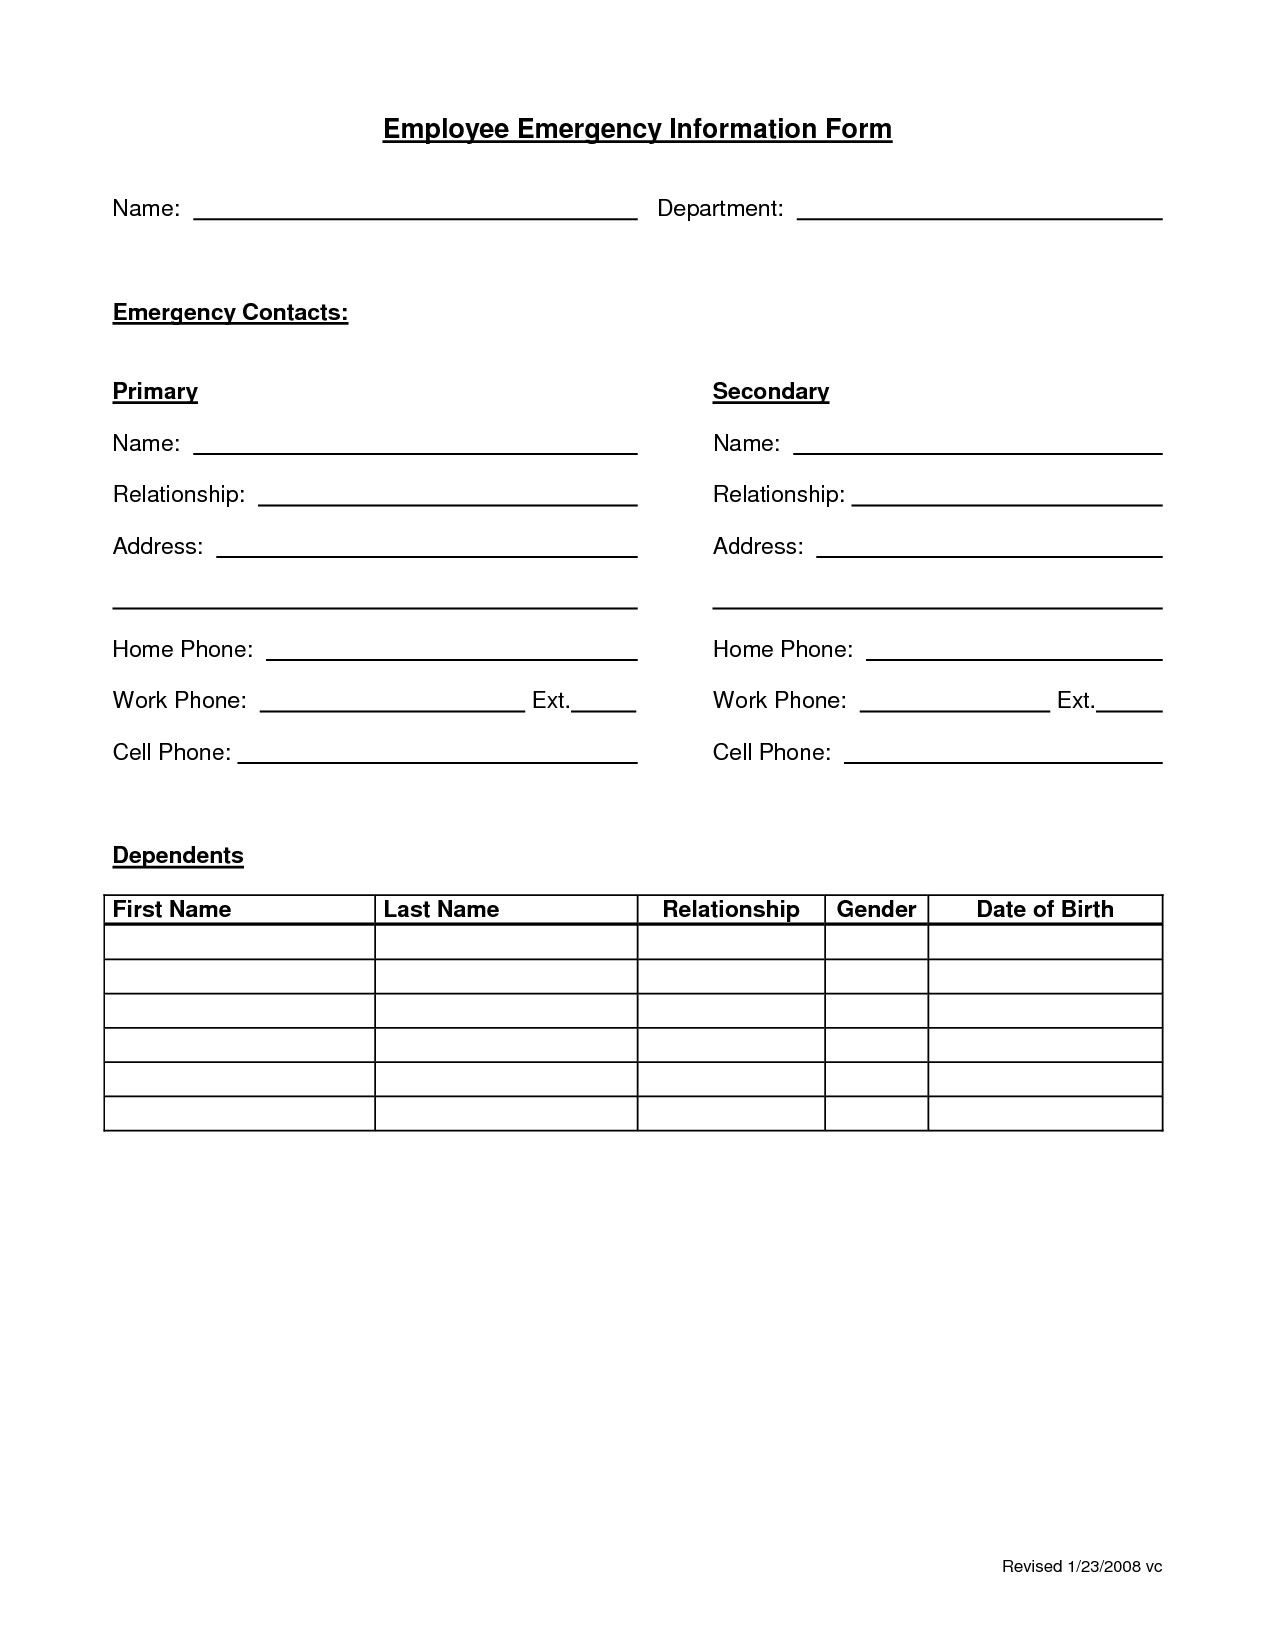 Employment Emergency Contact Form Lovely Employee Emergency Form Employee Forms Emergency Contact Form Emergency Contact Contact Form